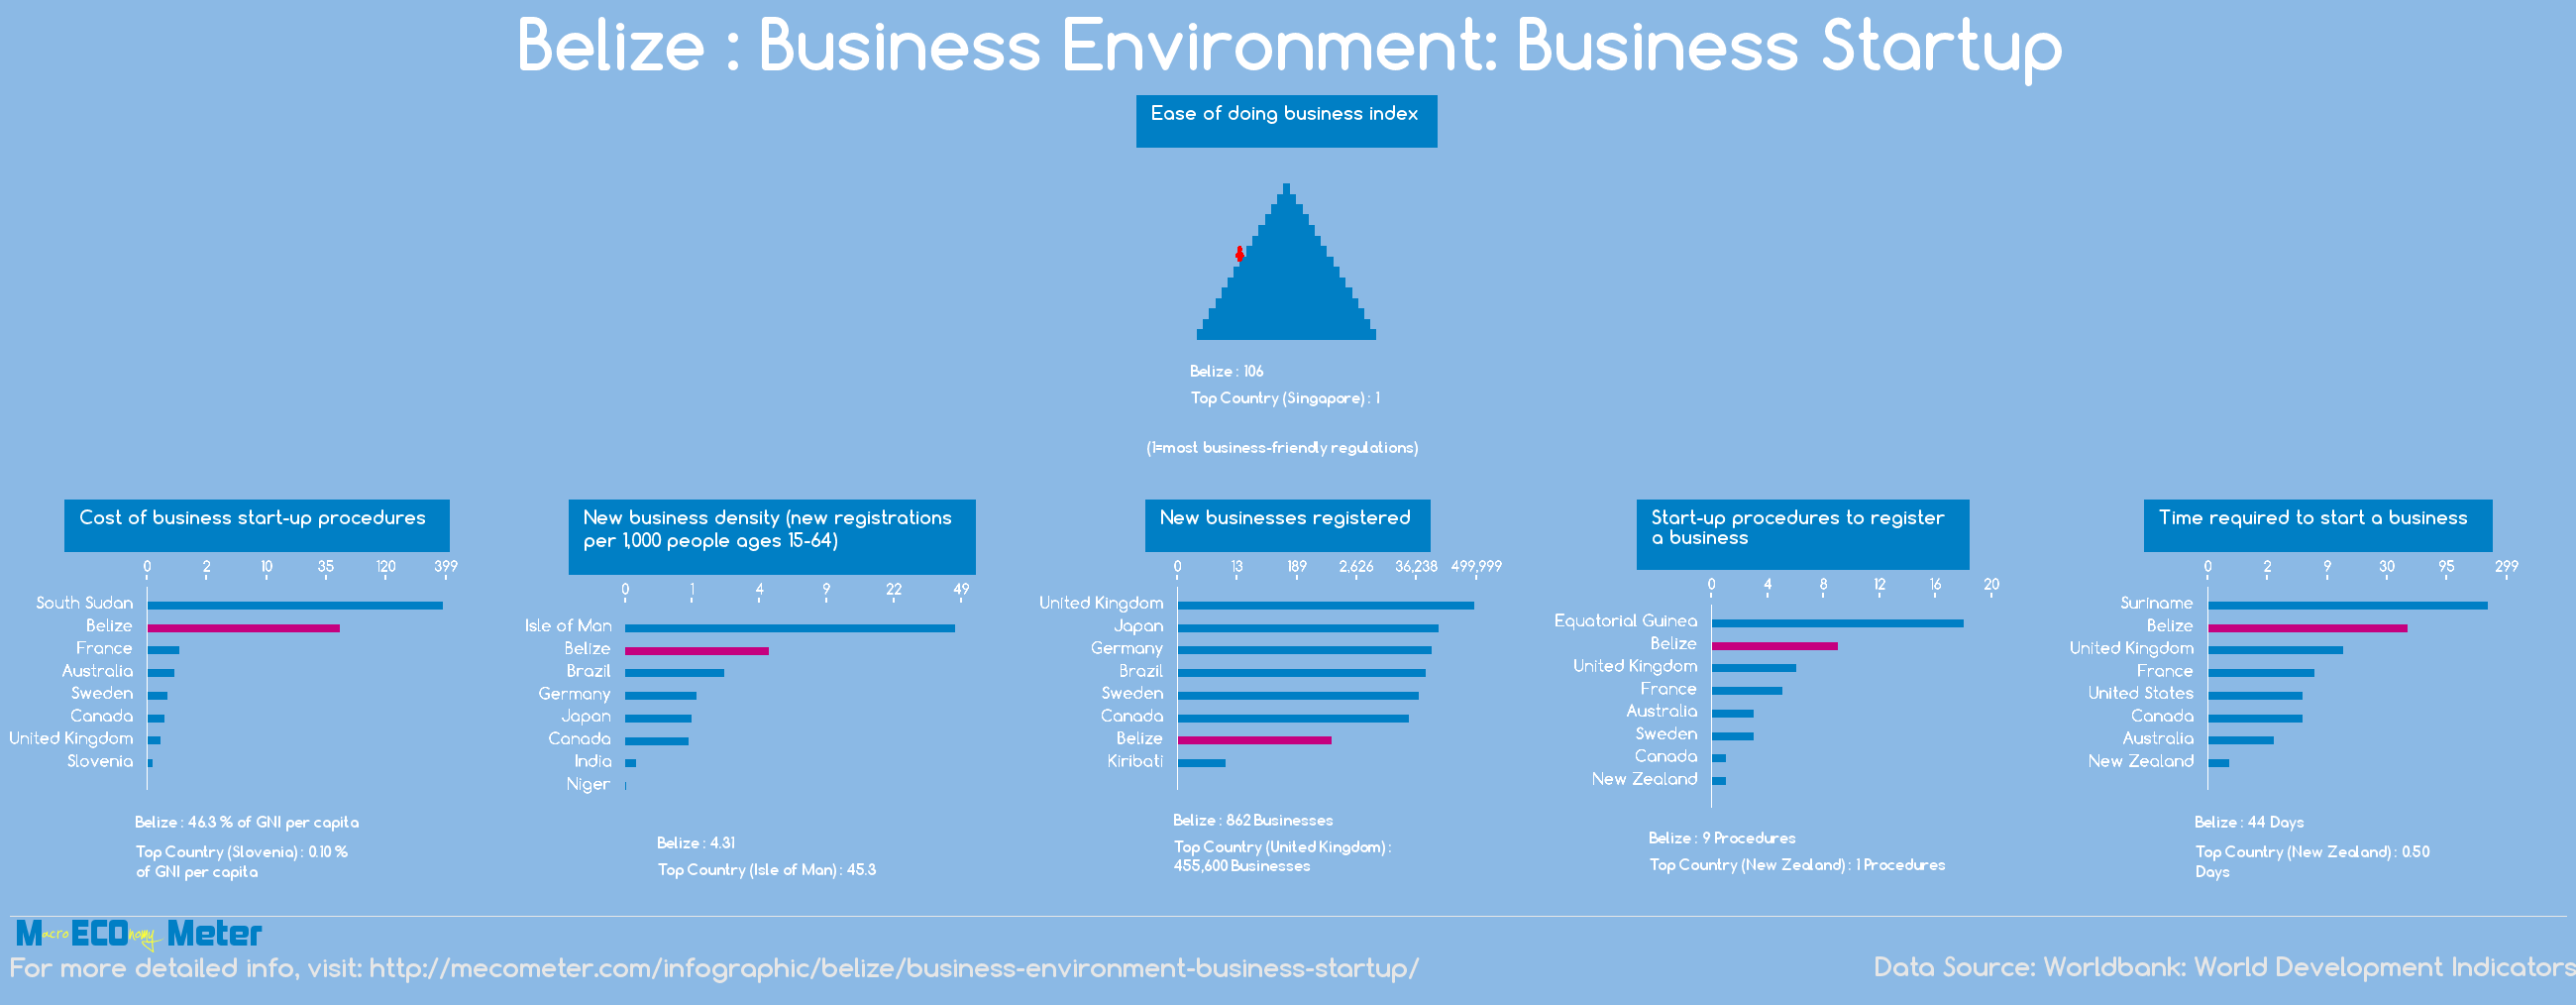 Belize : Business Environment: Business Startup